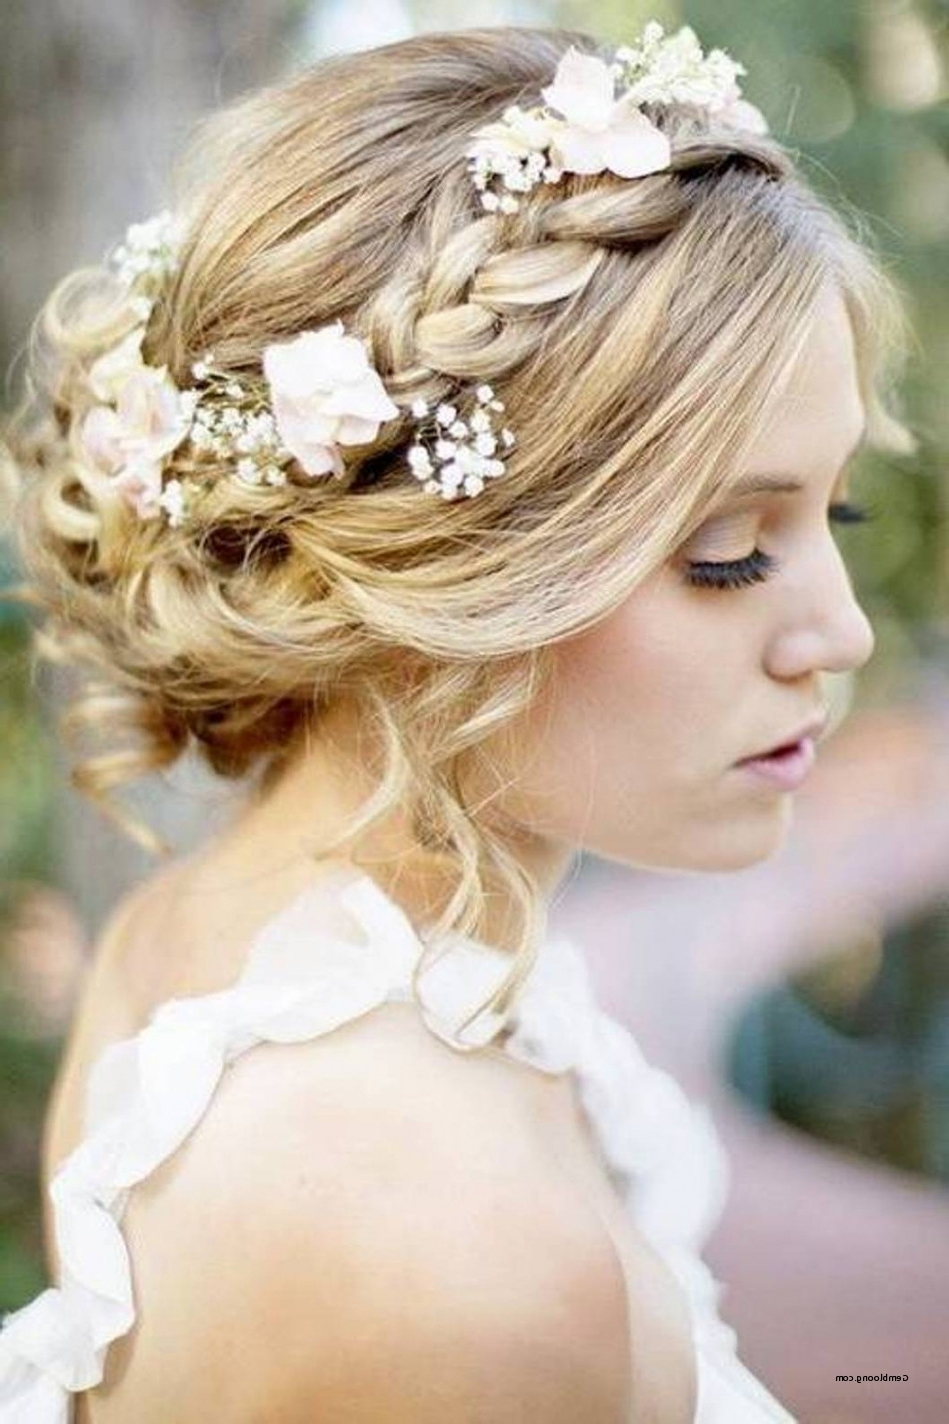 Short Hair Wedding Styles With Tiara Lovely Wedding Hairstyles For In Most Recent Wedding Hairstyles For Short Hair With Veil (View 9 of 15)